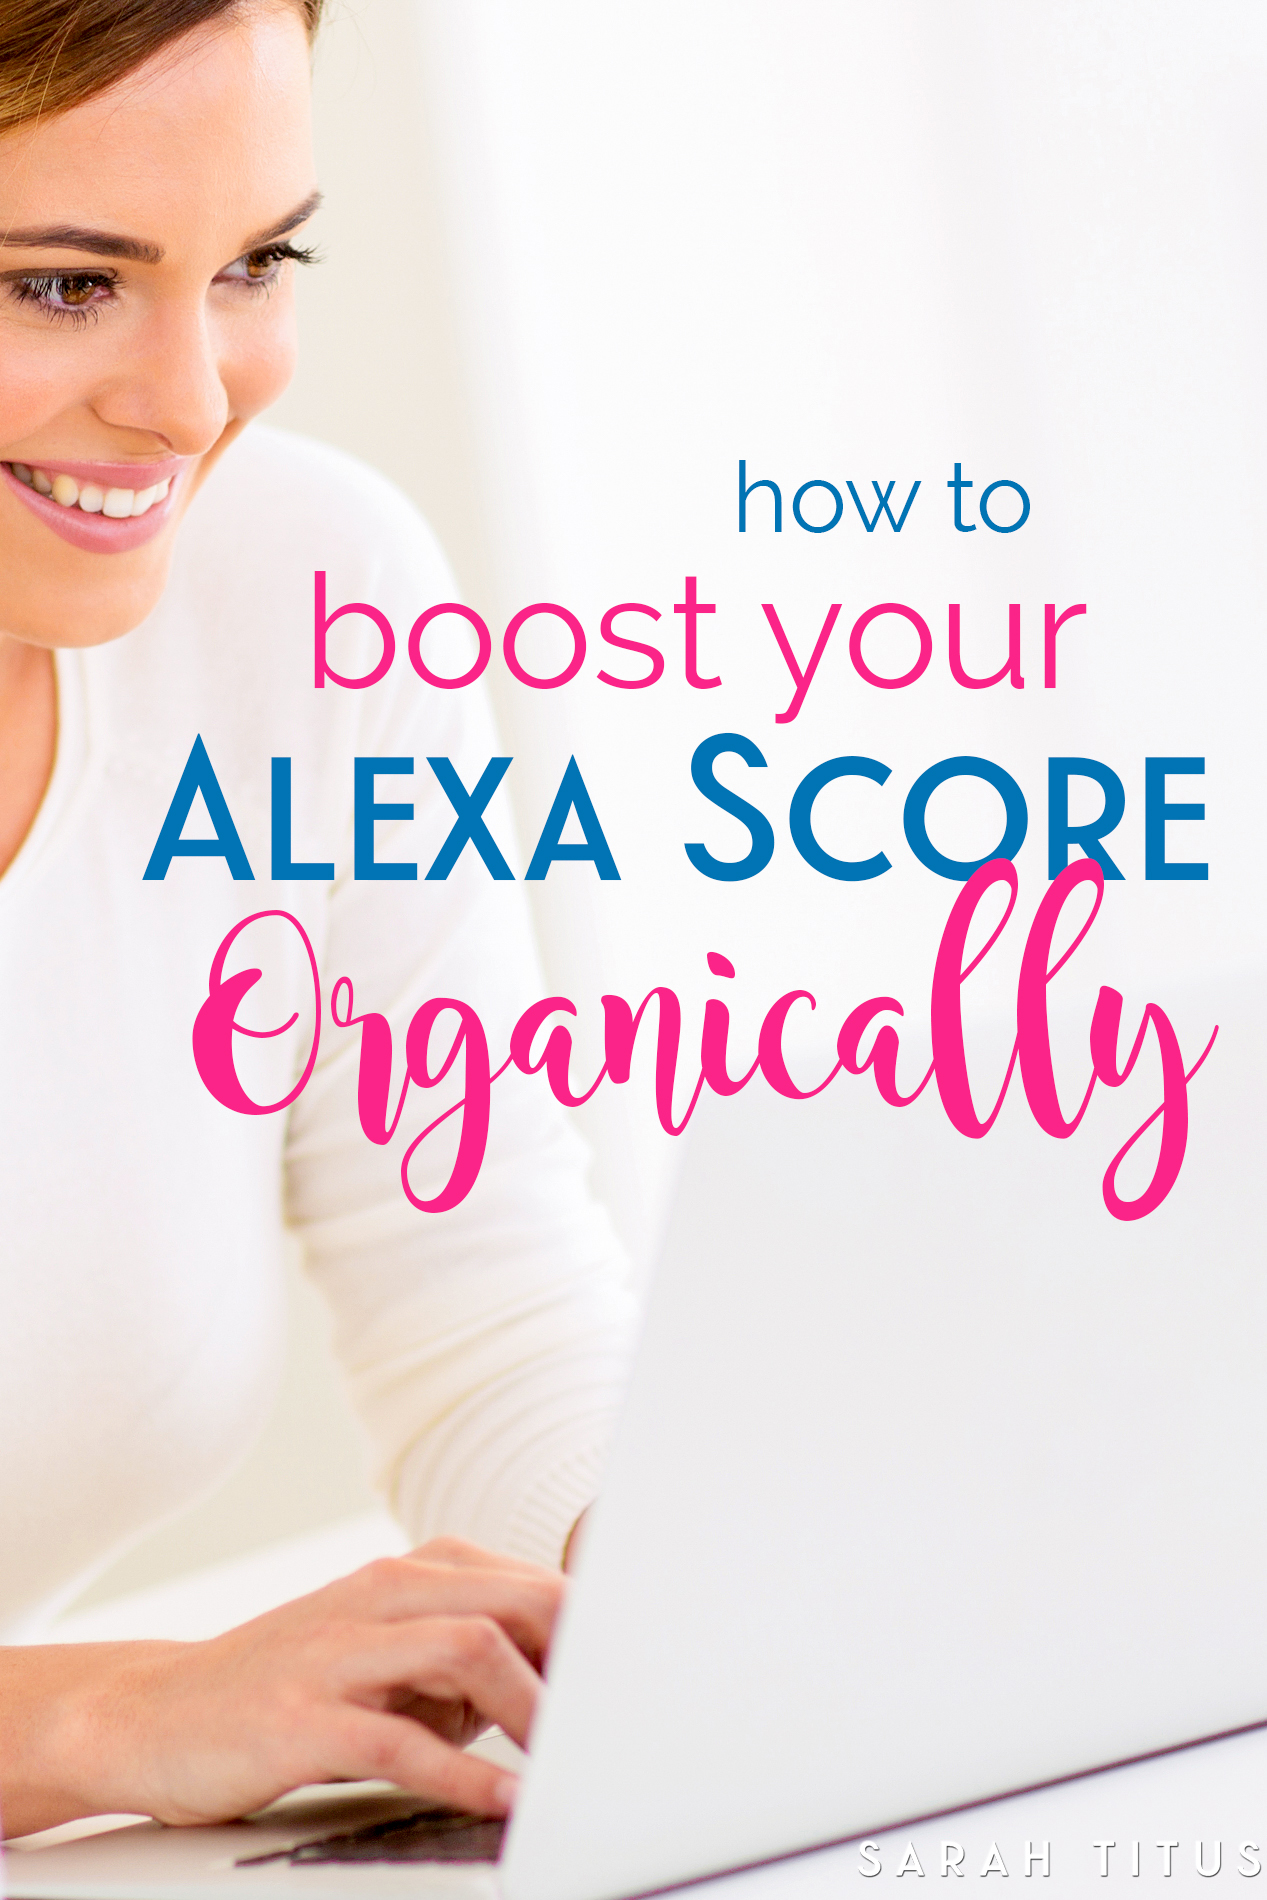 how to boost your alexa score organically sarah titus